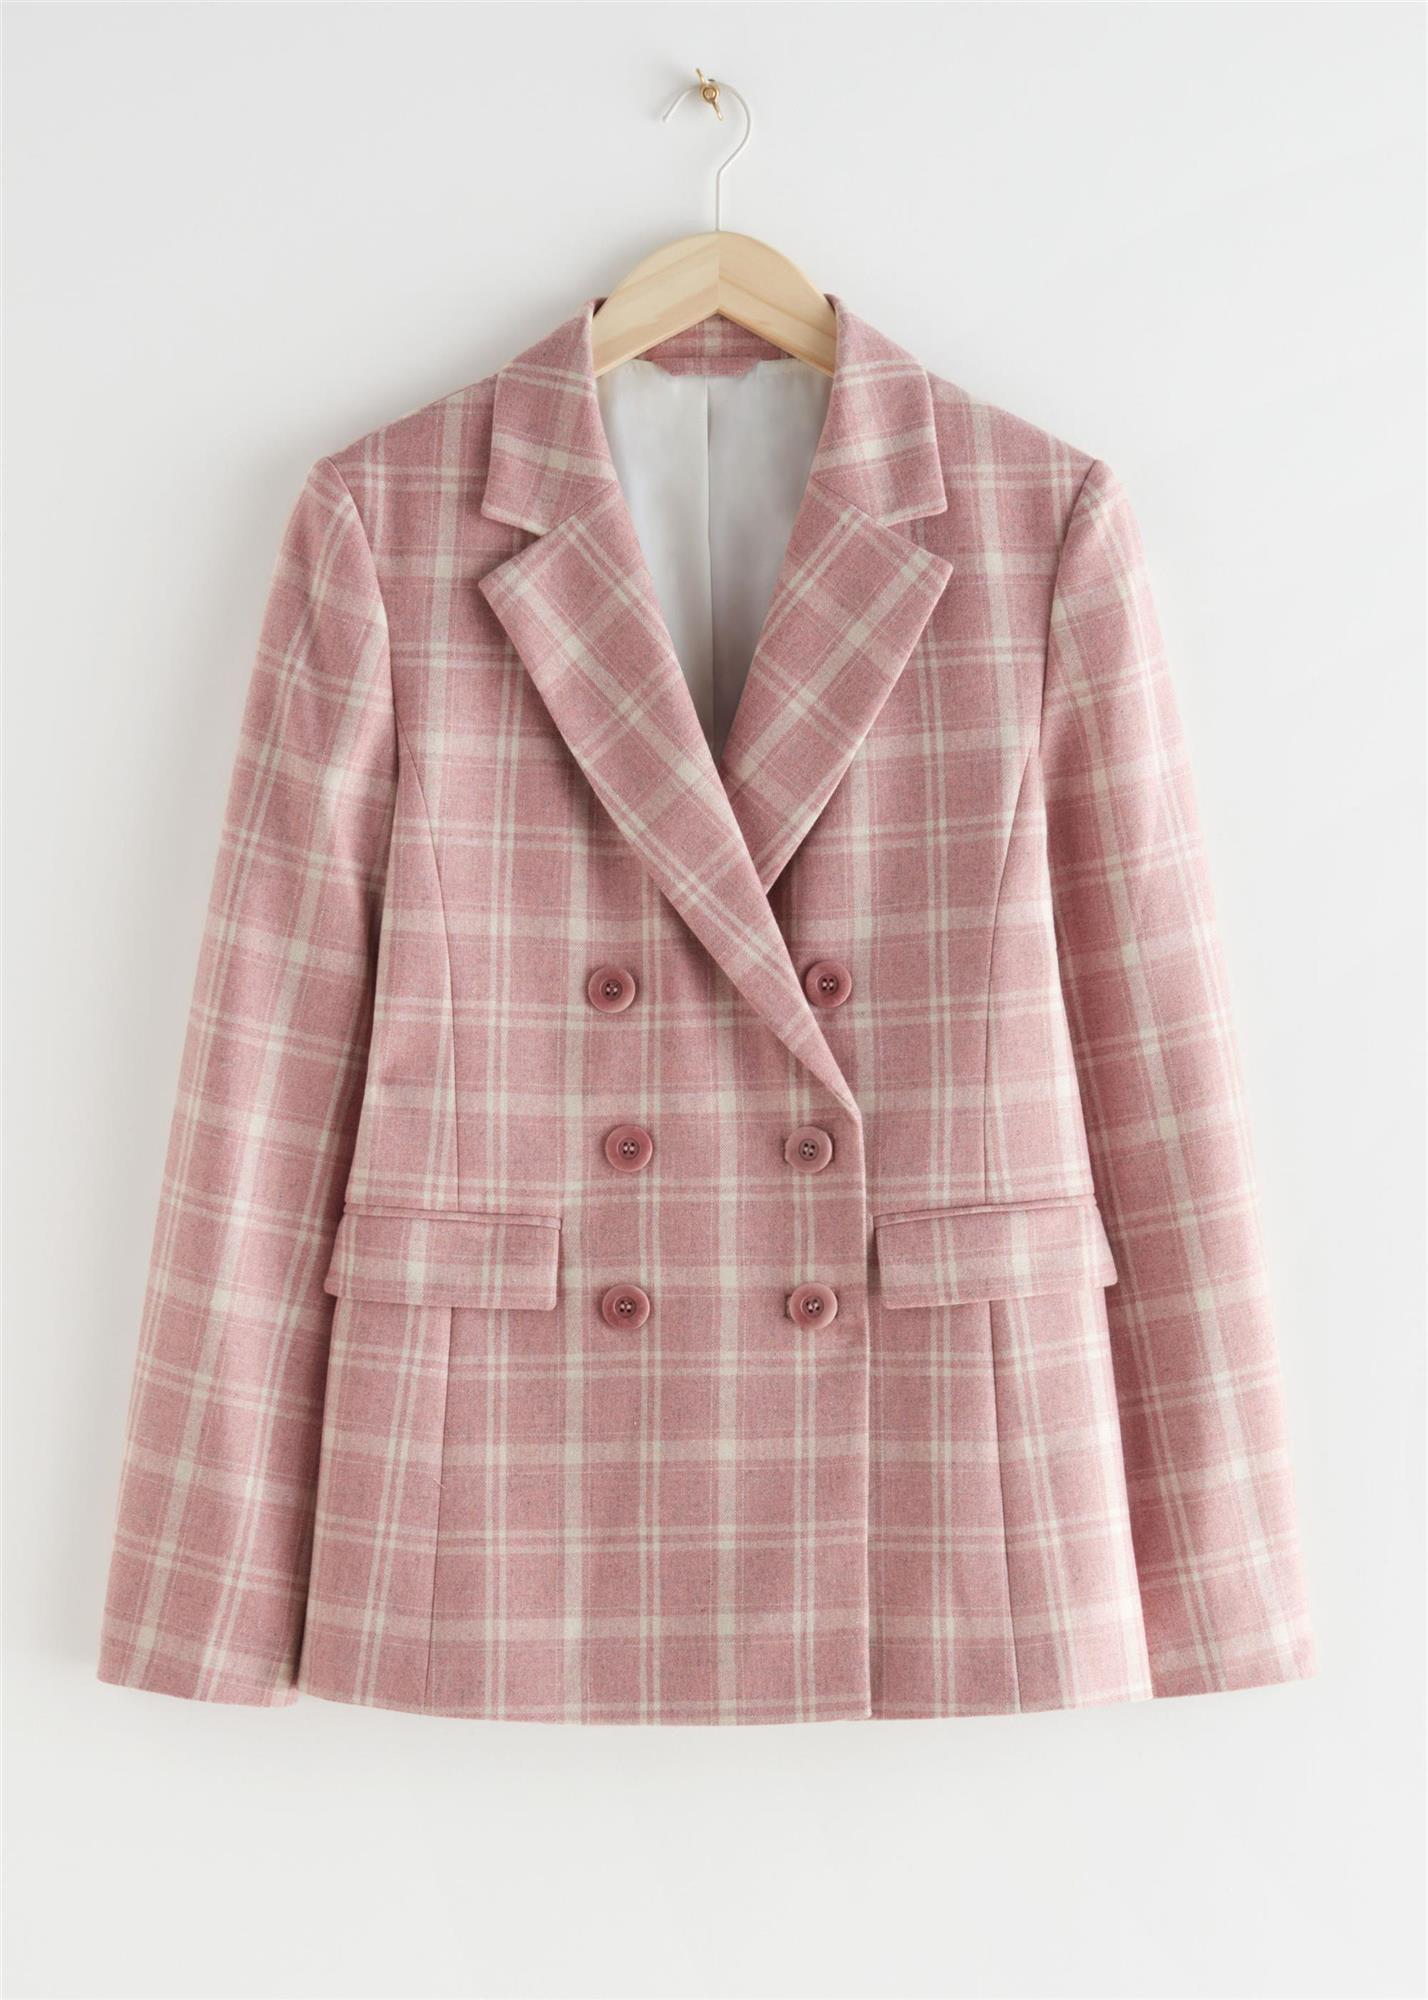 blazer-rosa-cuadros-de-&-other-stories